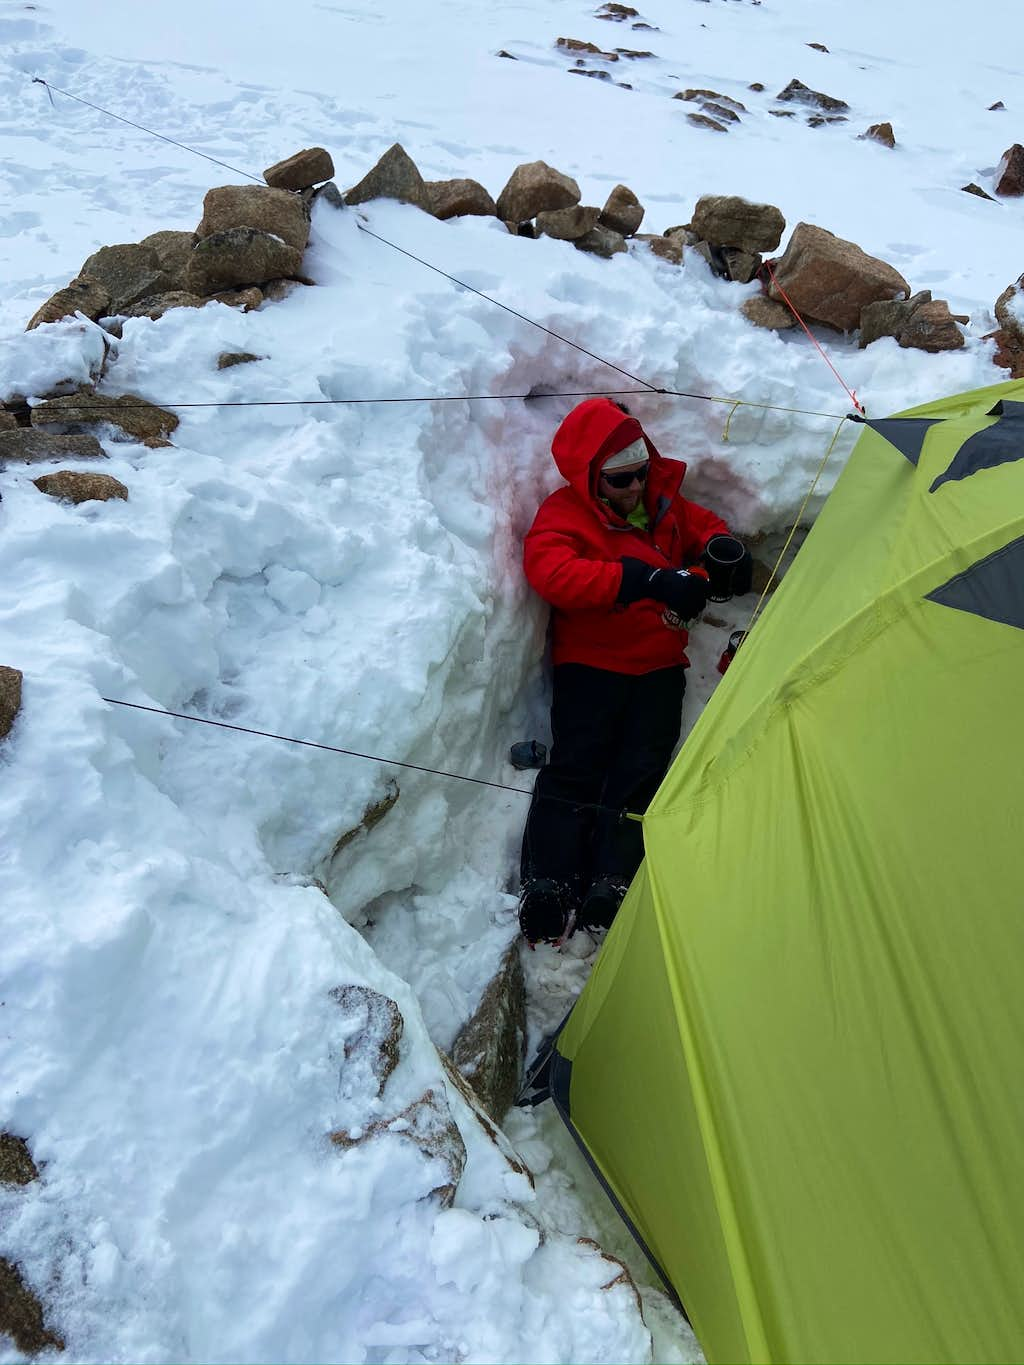 Boiling water in the gap between the wind wall and tent